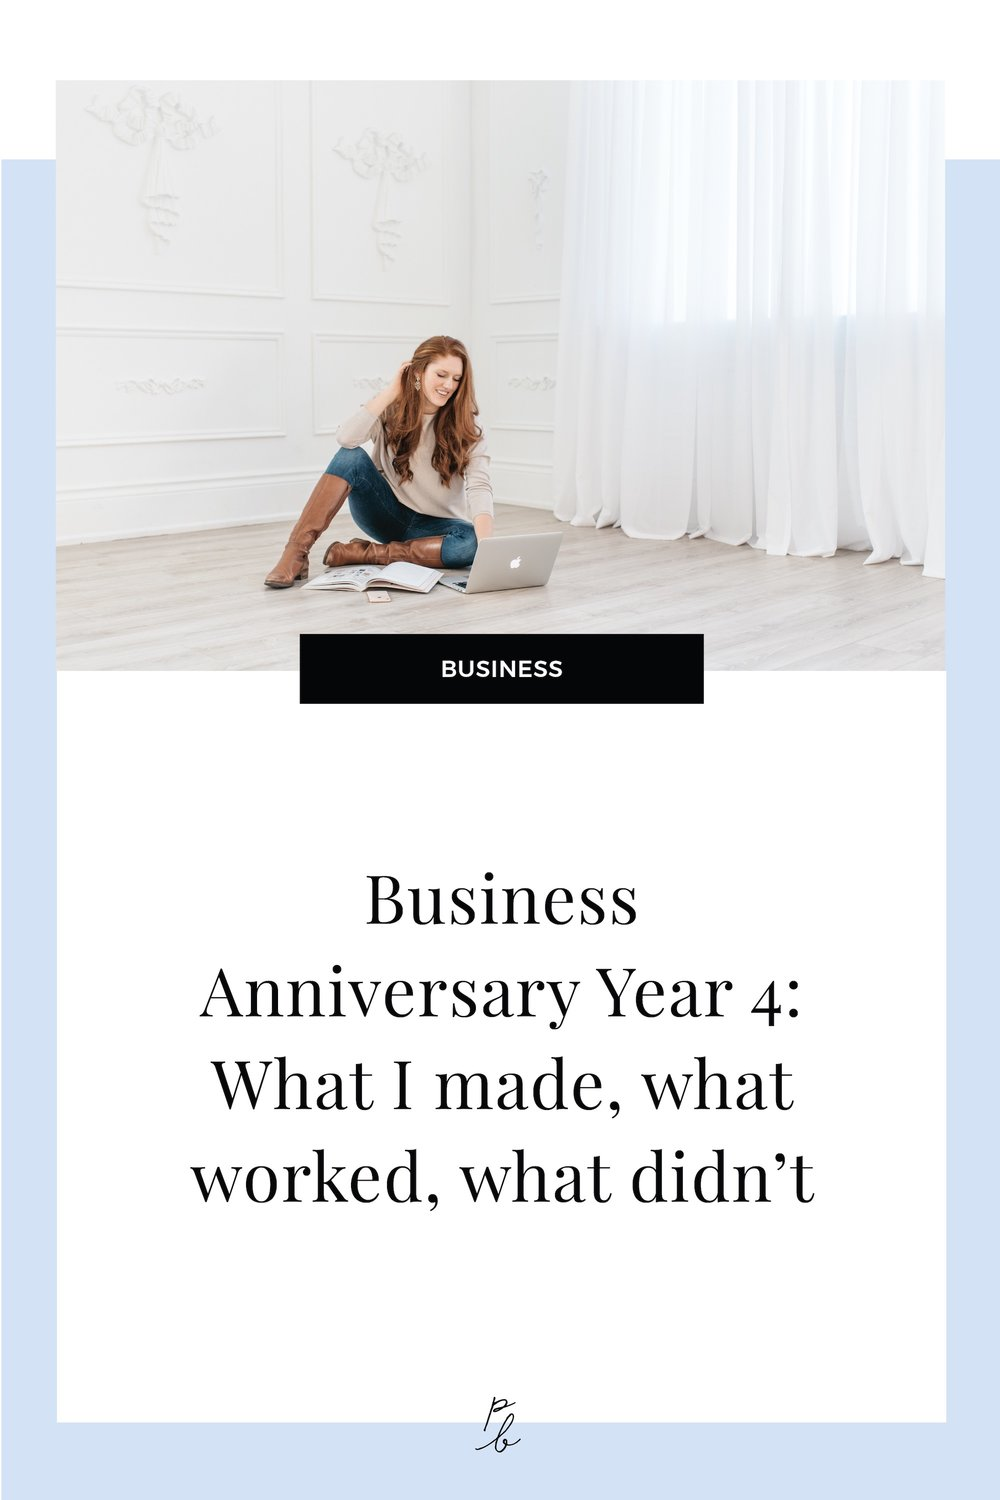 Business Anniversary year 4: What I made, what worked, what didn't.jpg